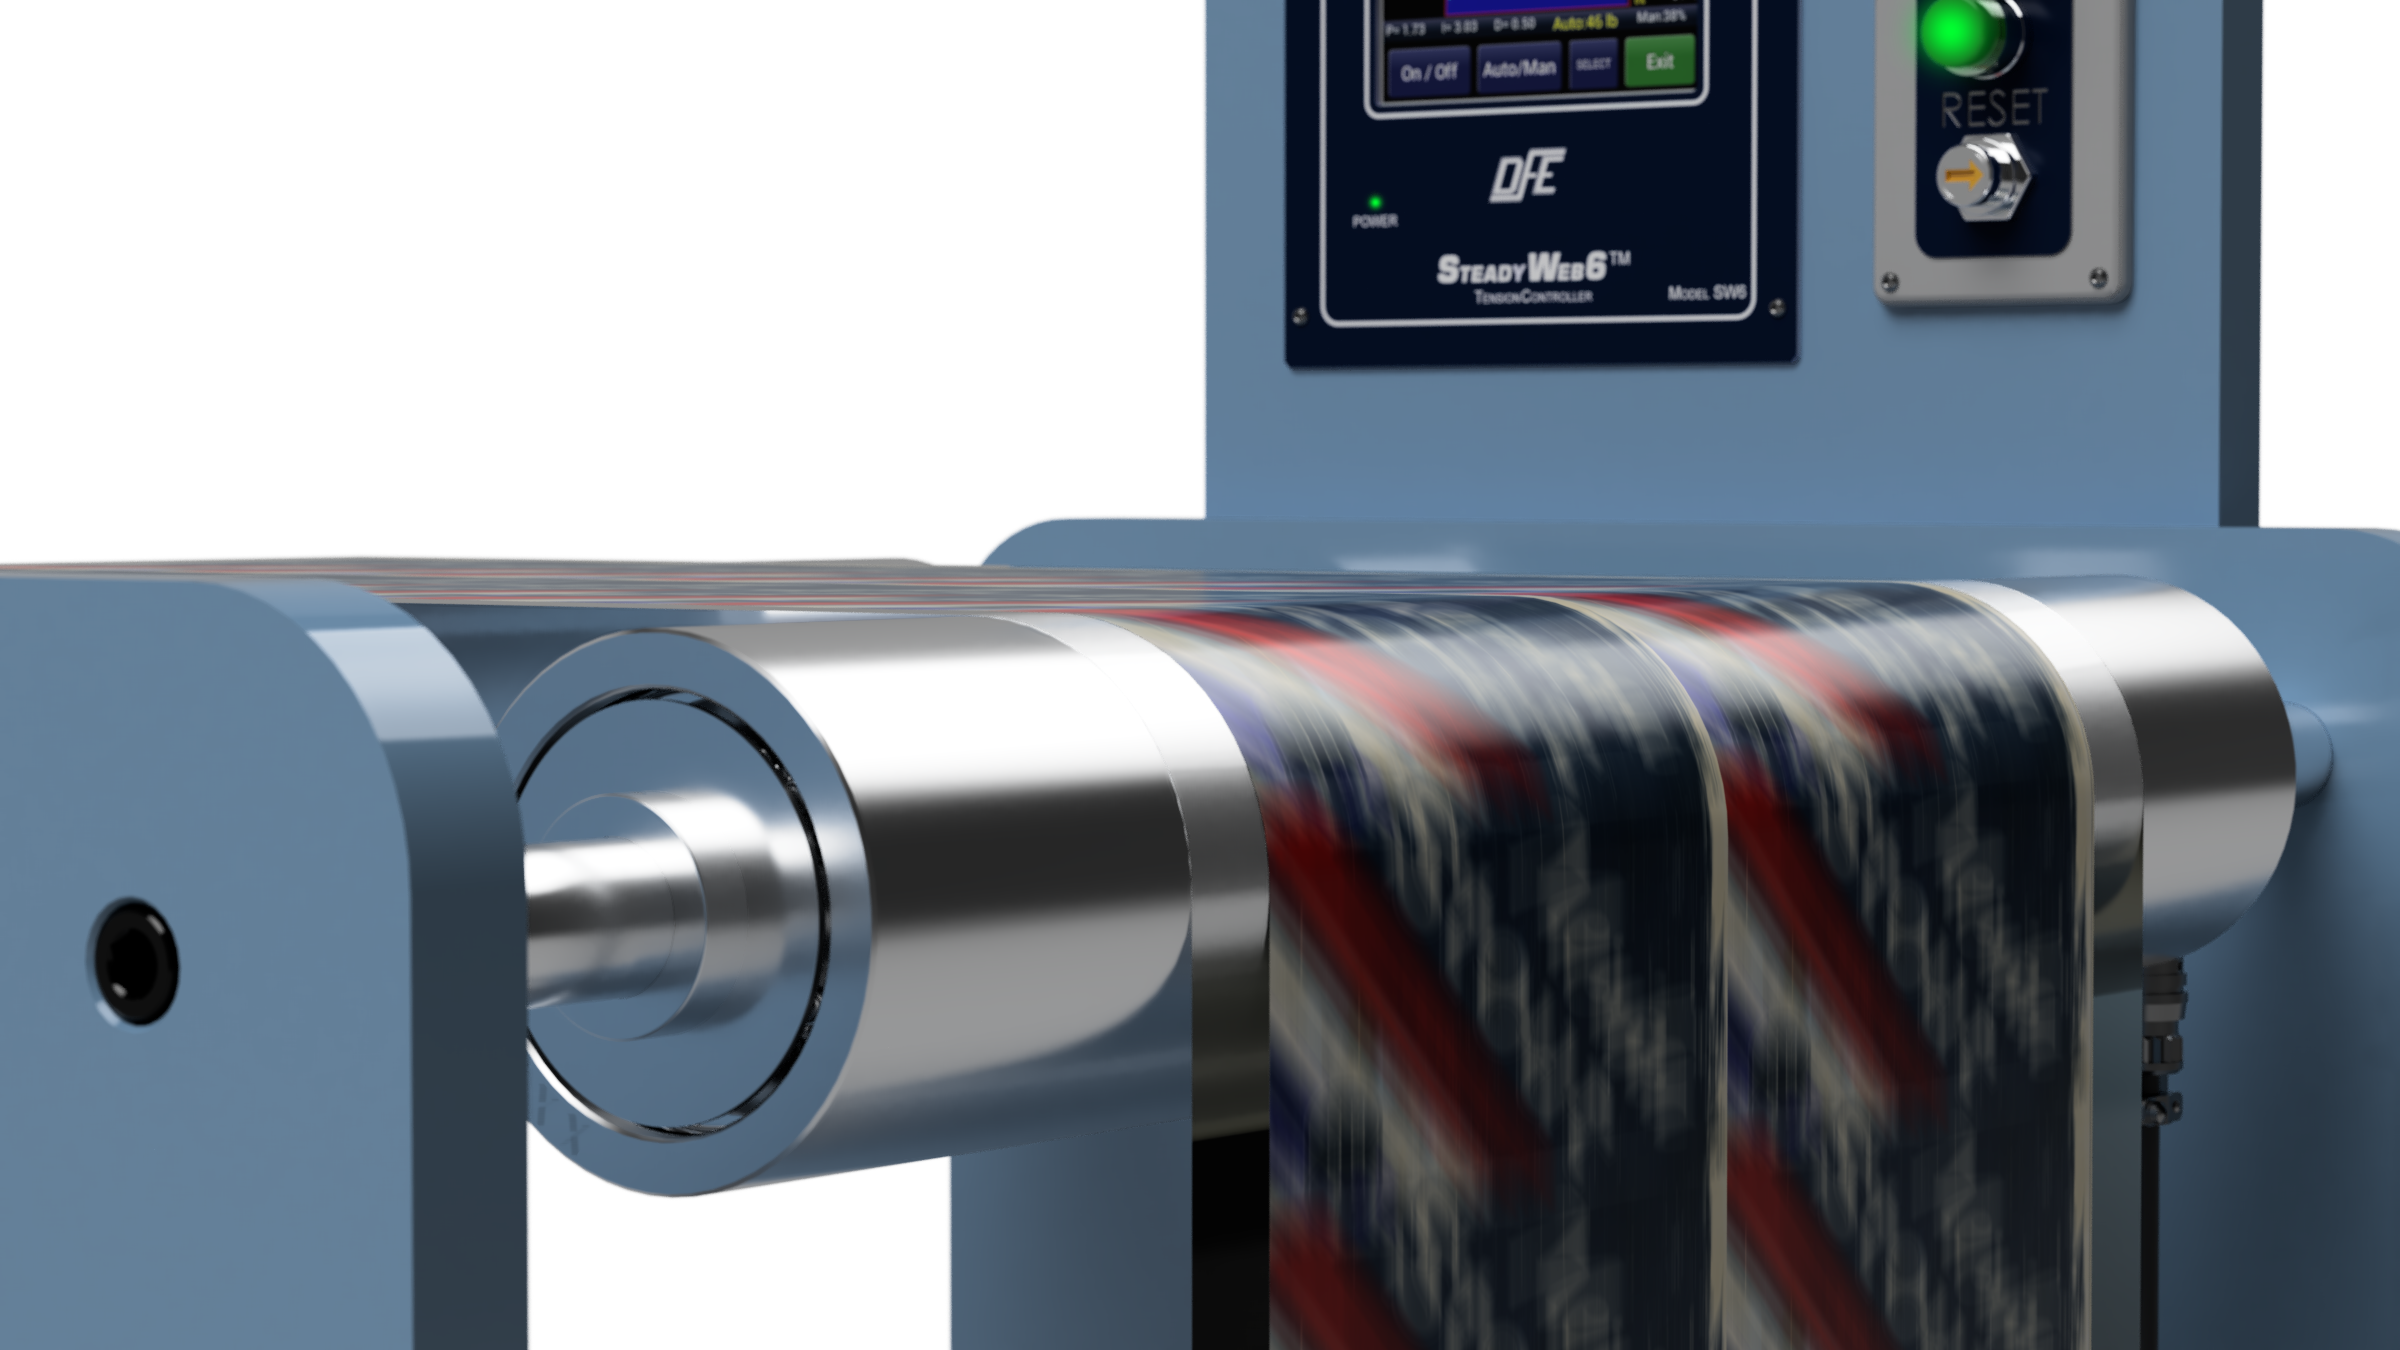 Printing press with Tension Roll Transducer